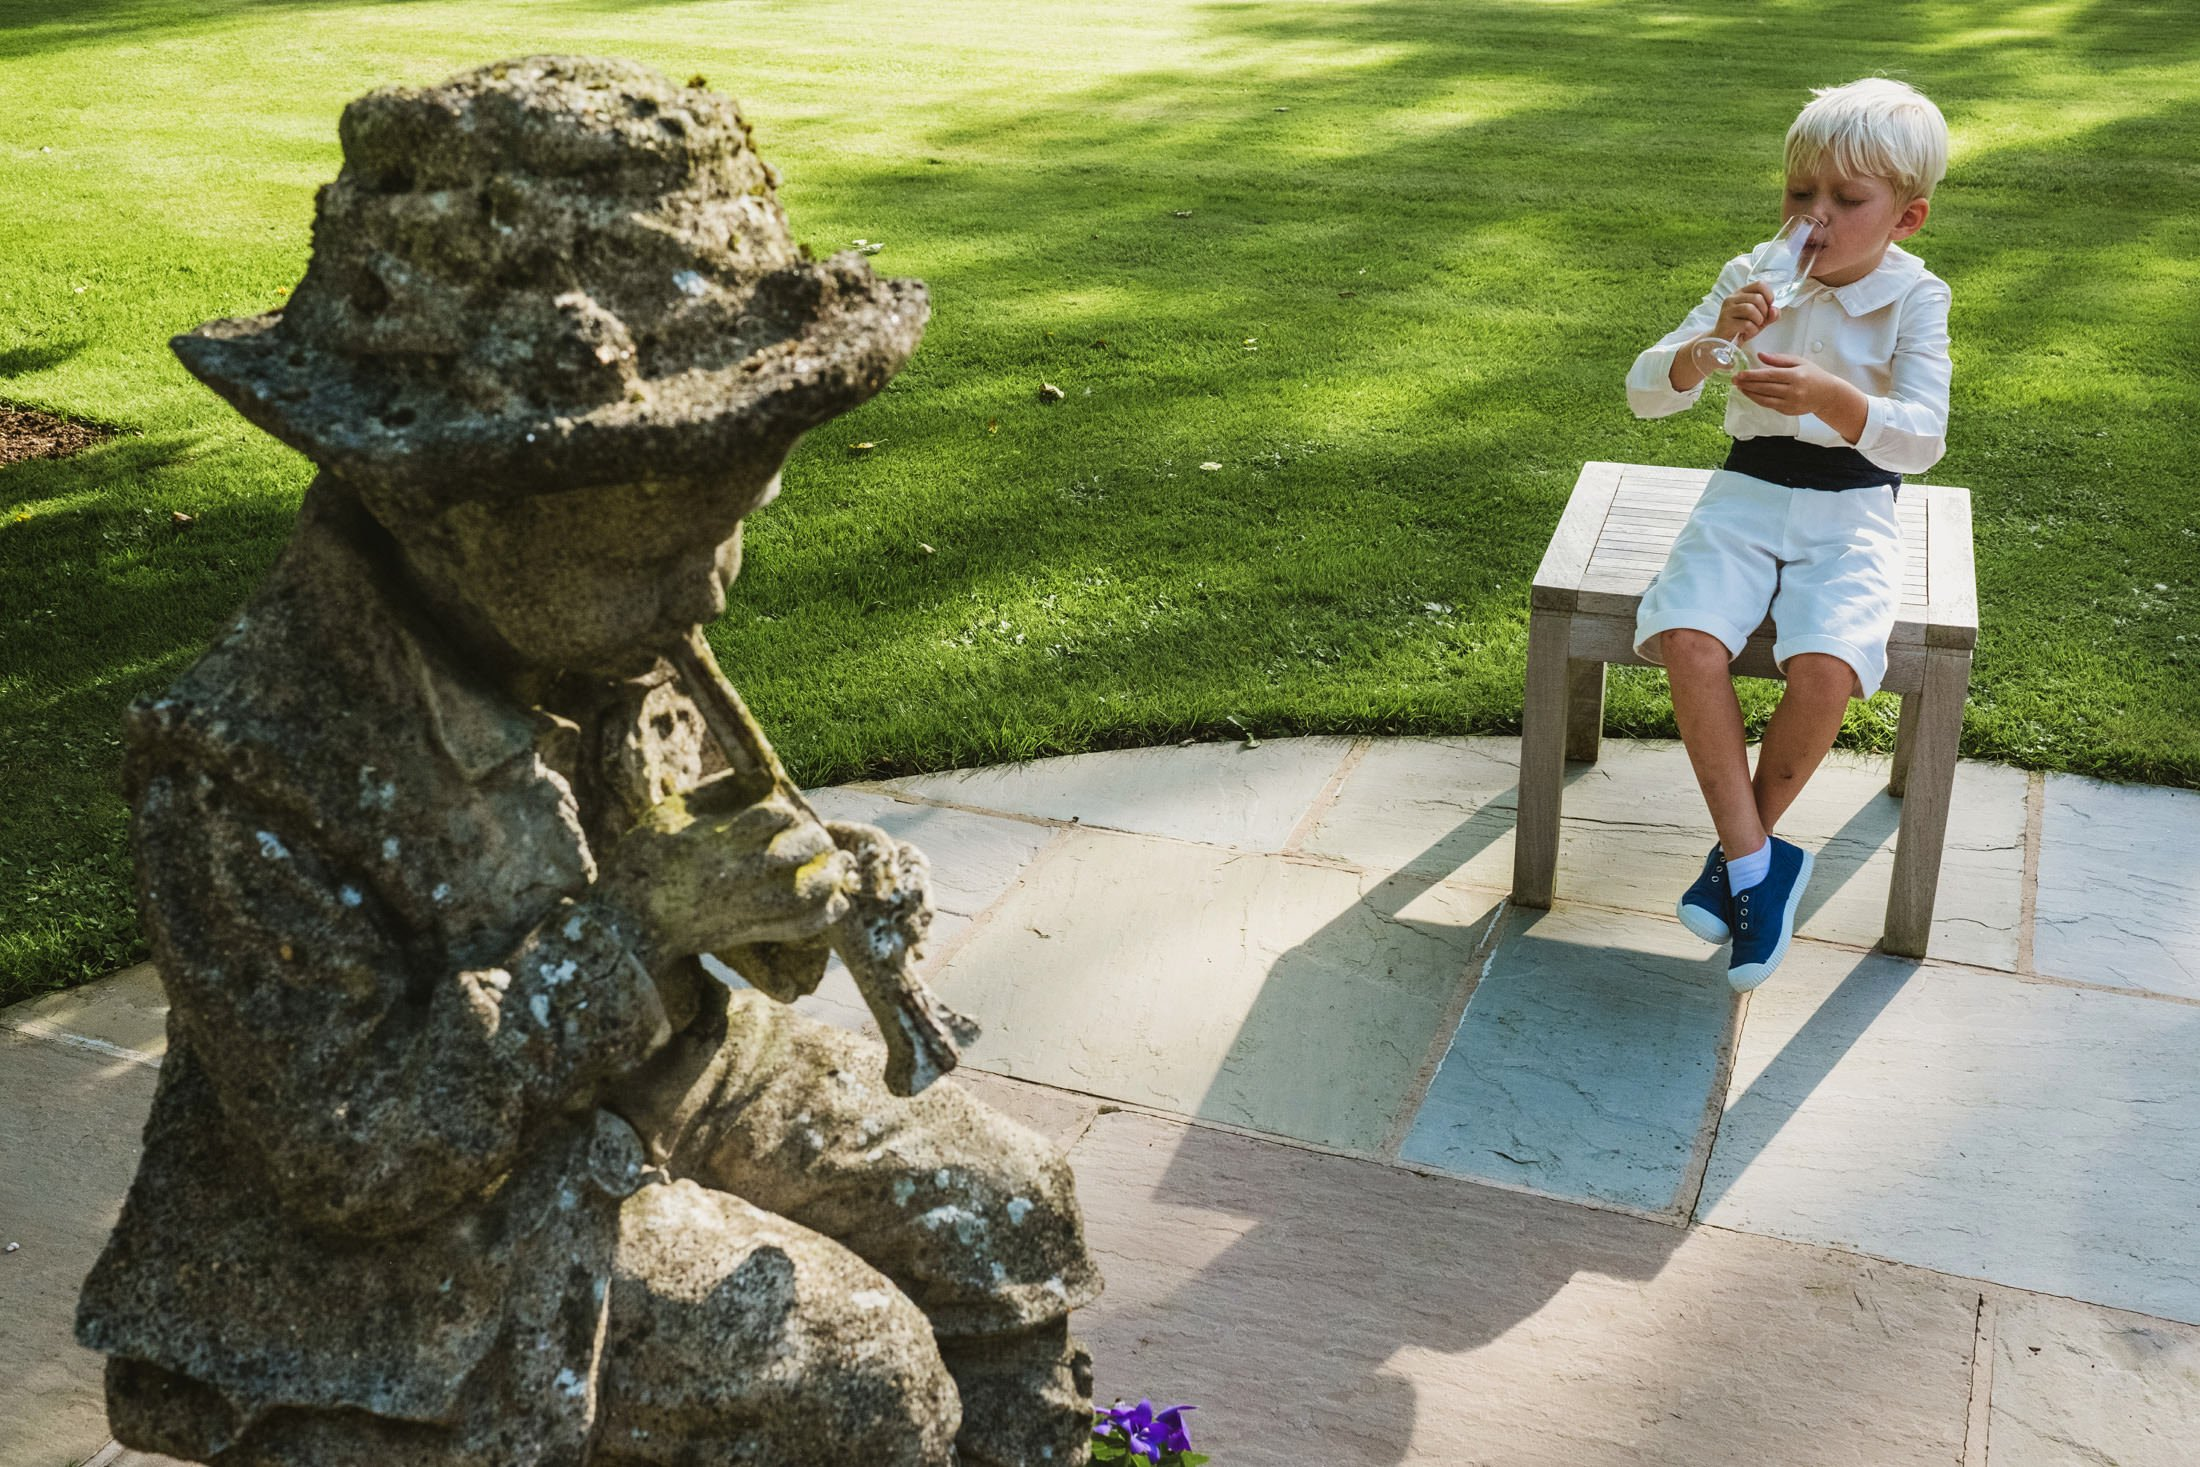 Documentary wedding photography, page boy drinking water in symmetry with stone boy playing a flute